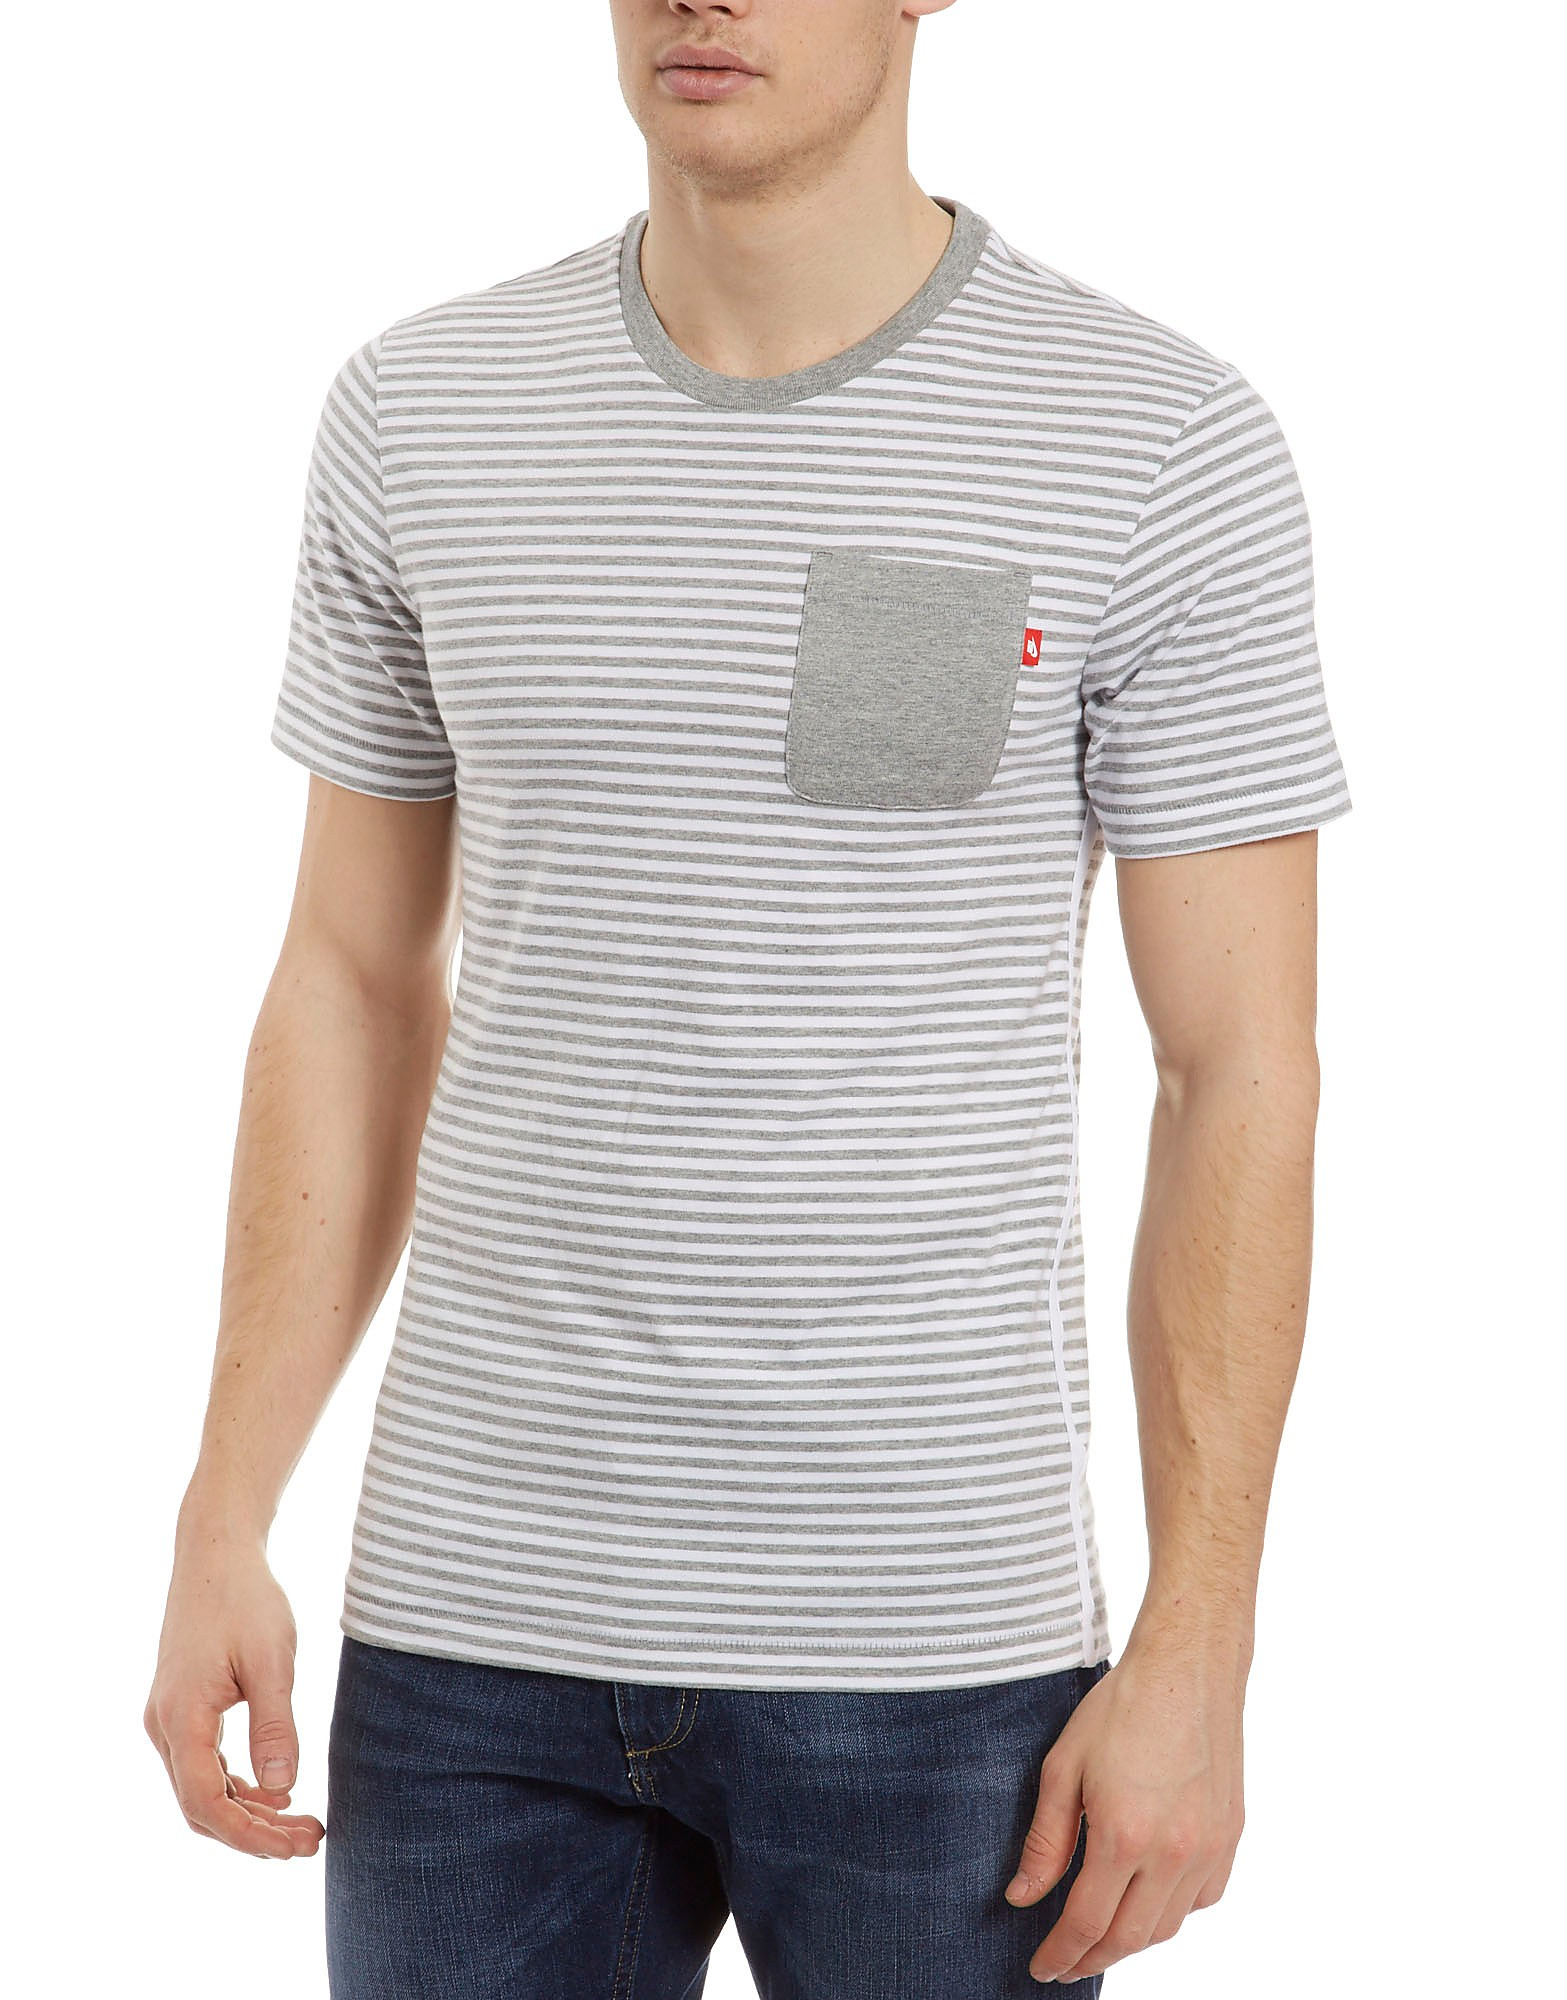 Nike Glory Striped Pocket T-Shirt product image